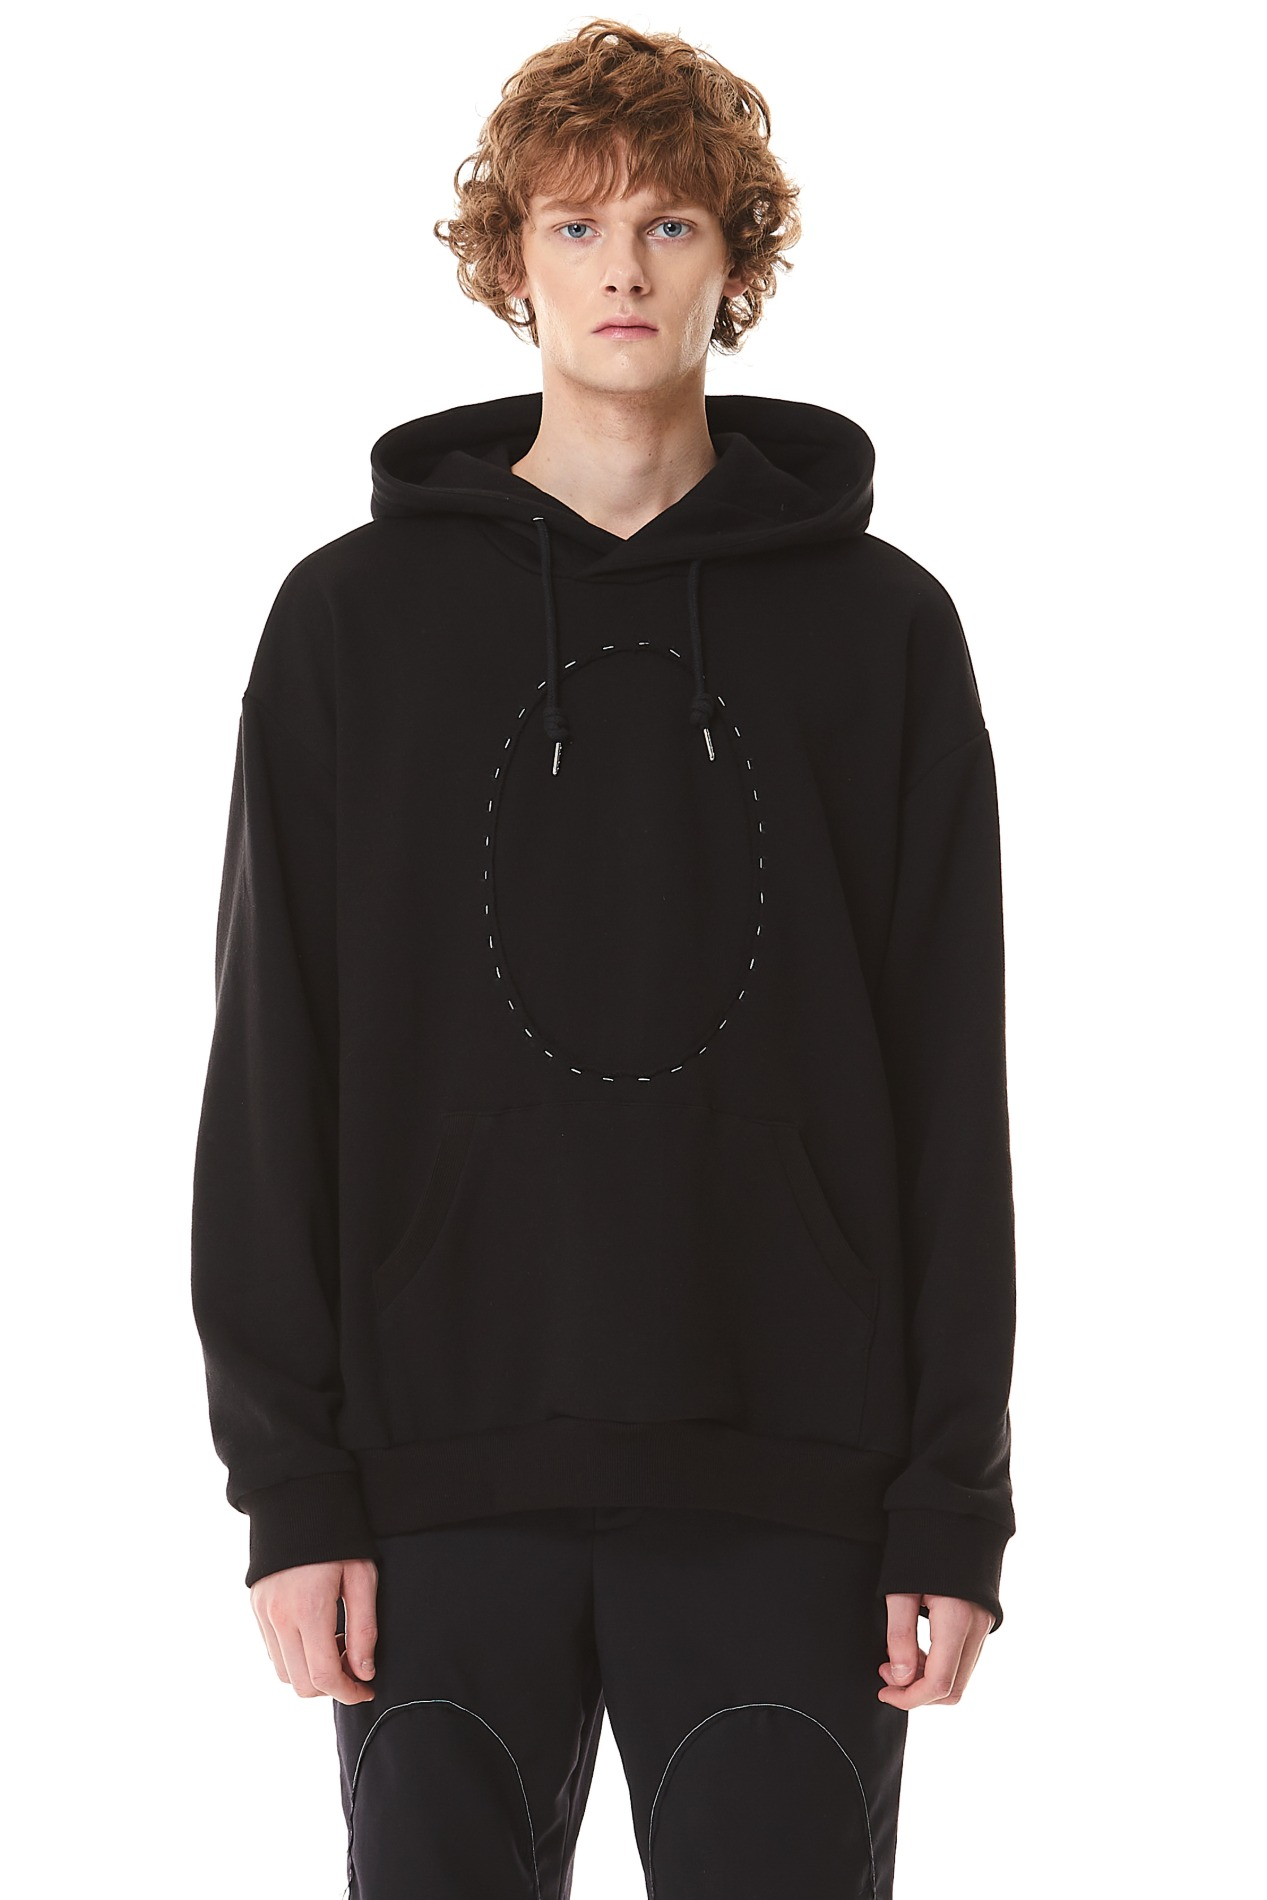 CircleCropped Hand Stitch Hoodie(Black)